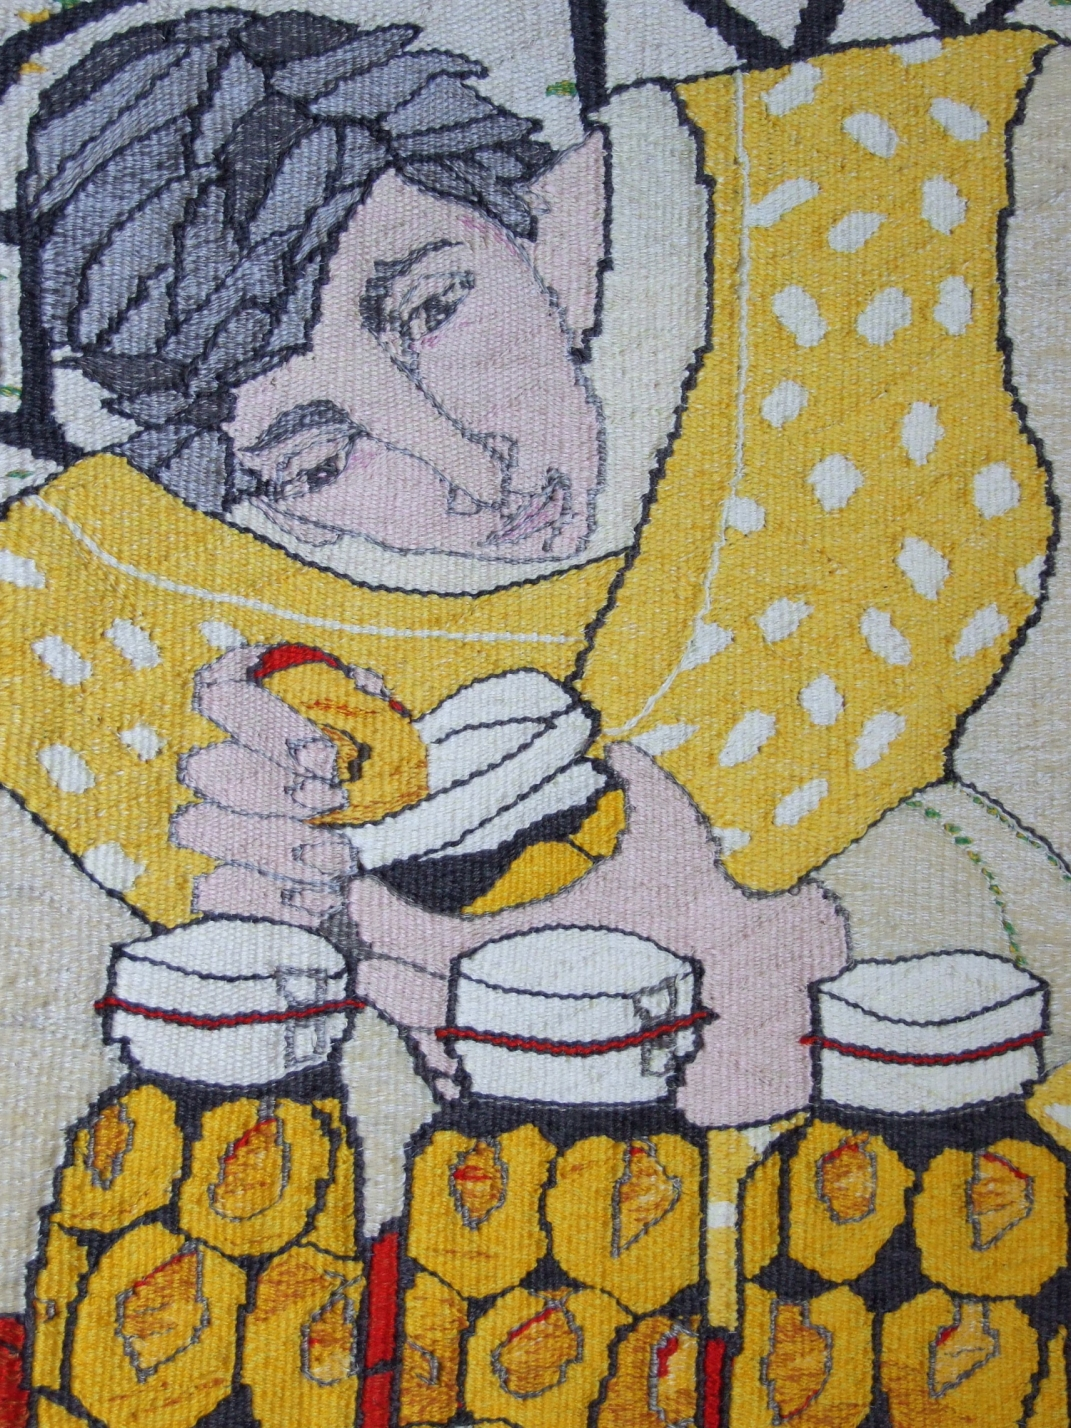 Pickled Peaches (materials: linen, cotton, wool; size: 70x60cm)